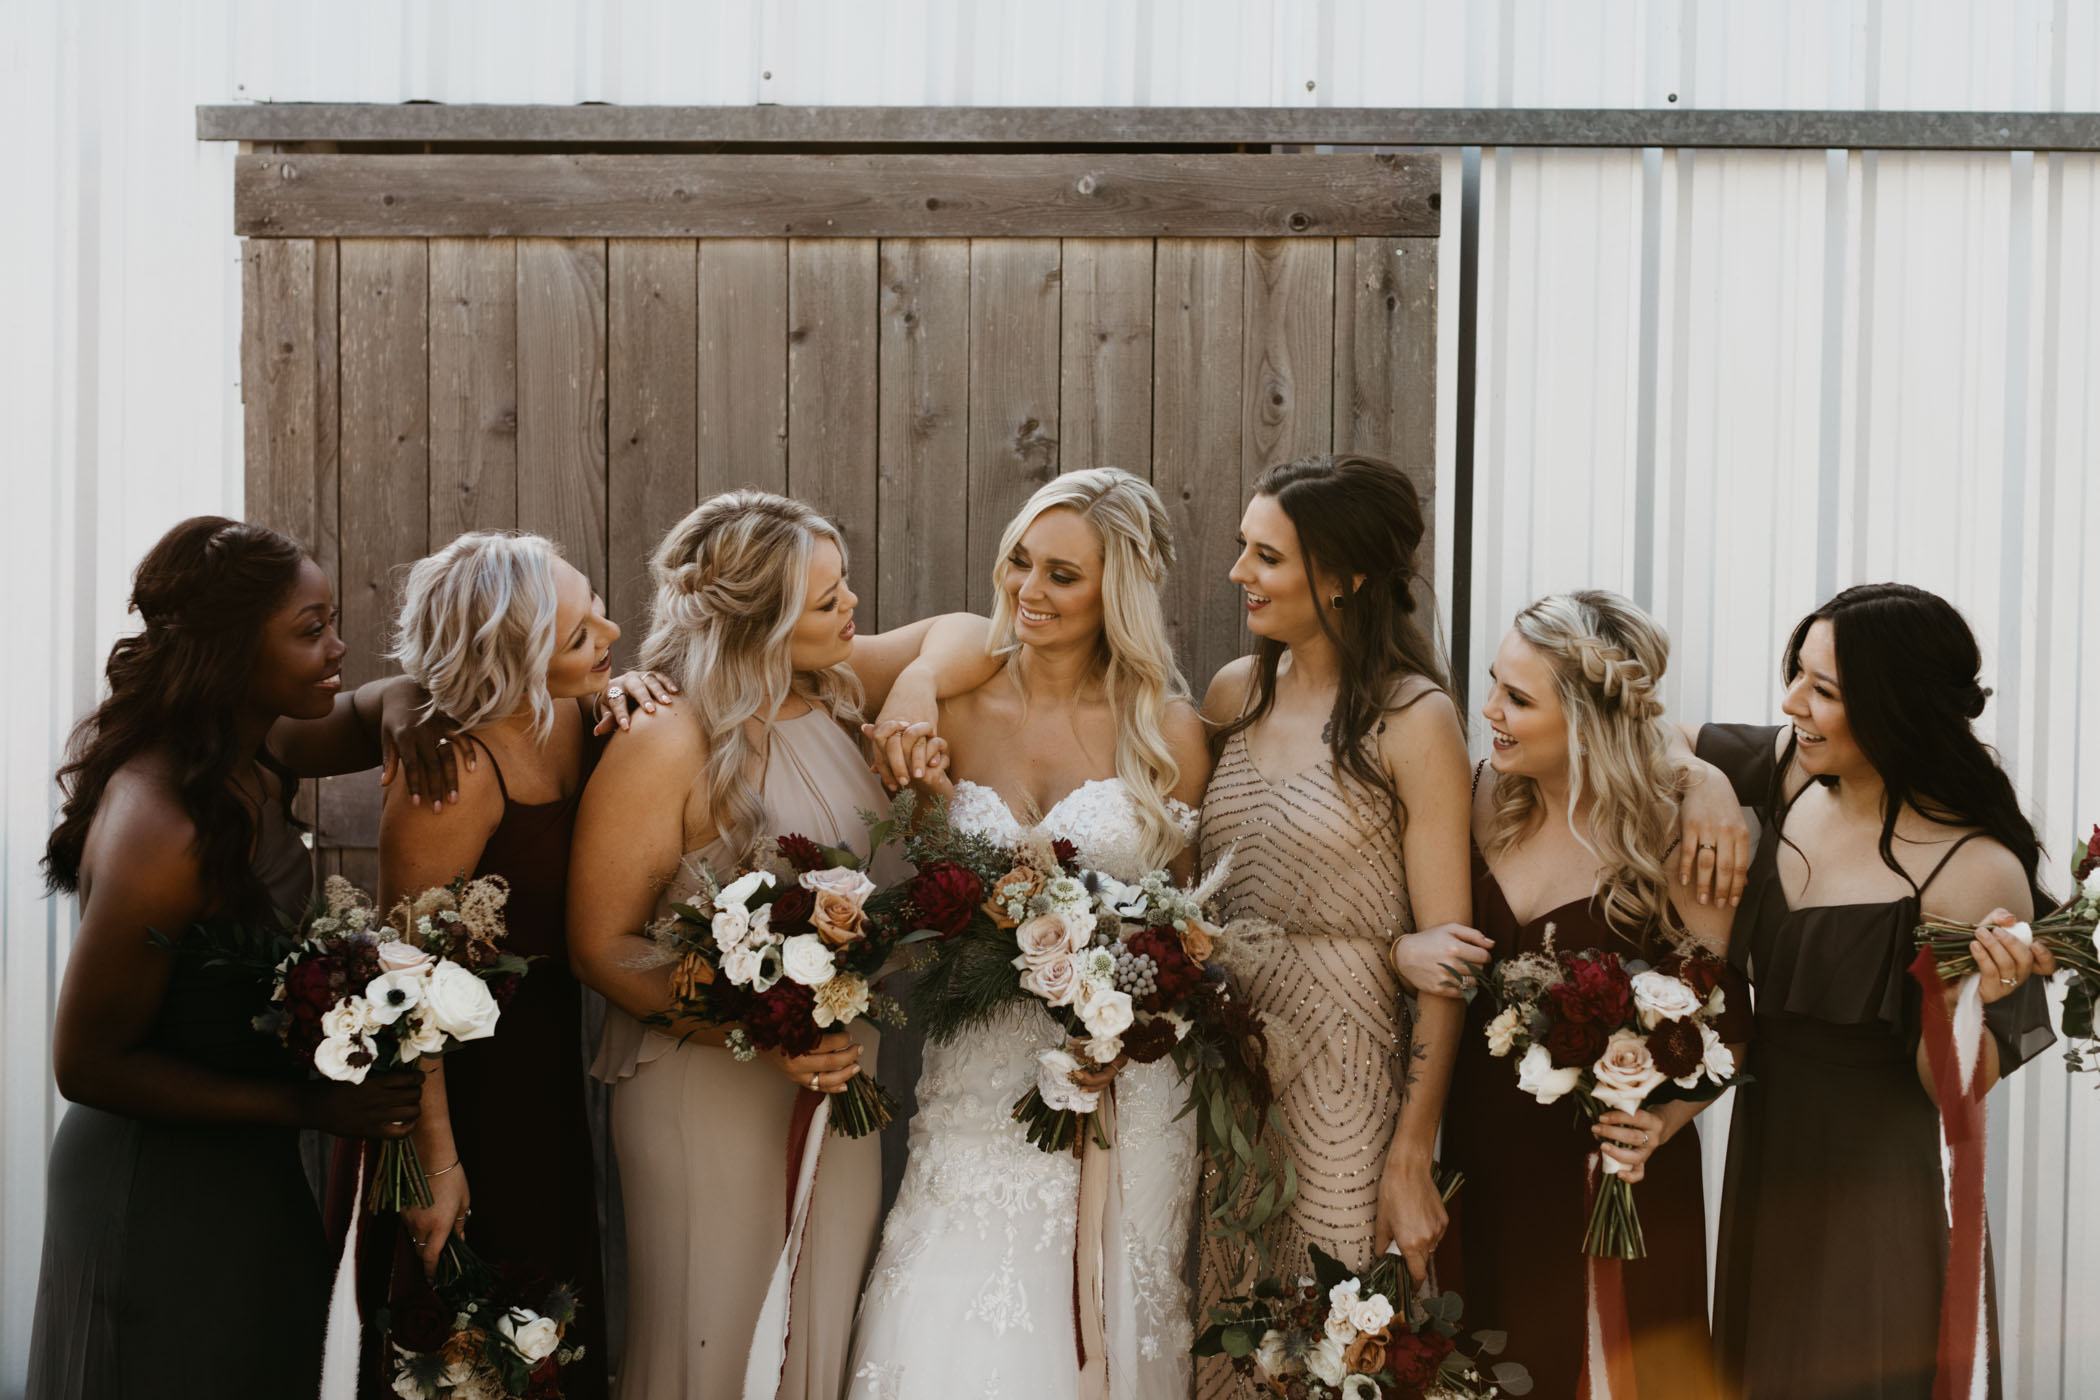 bridesmaids laughing and spending time together before the wedding ceremony starts